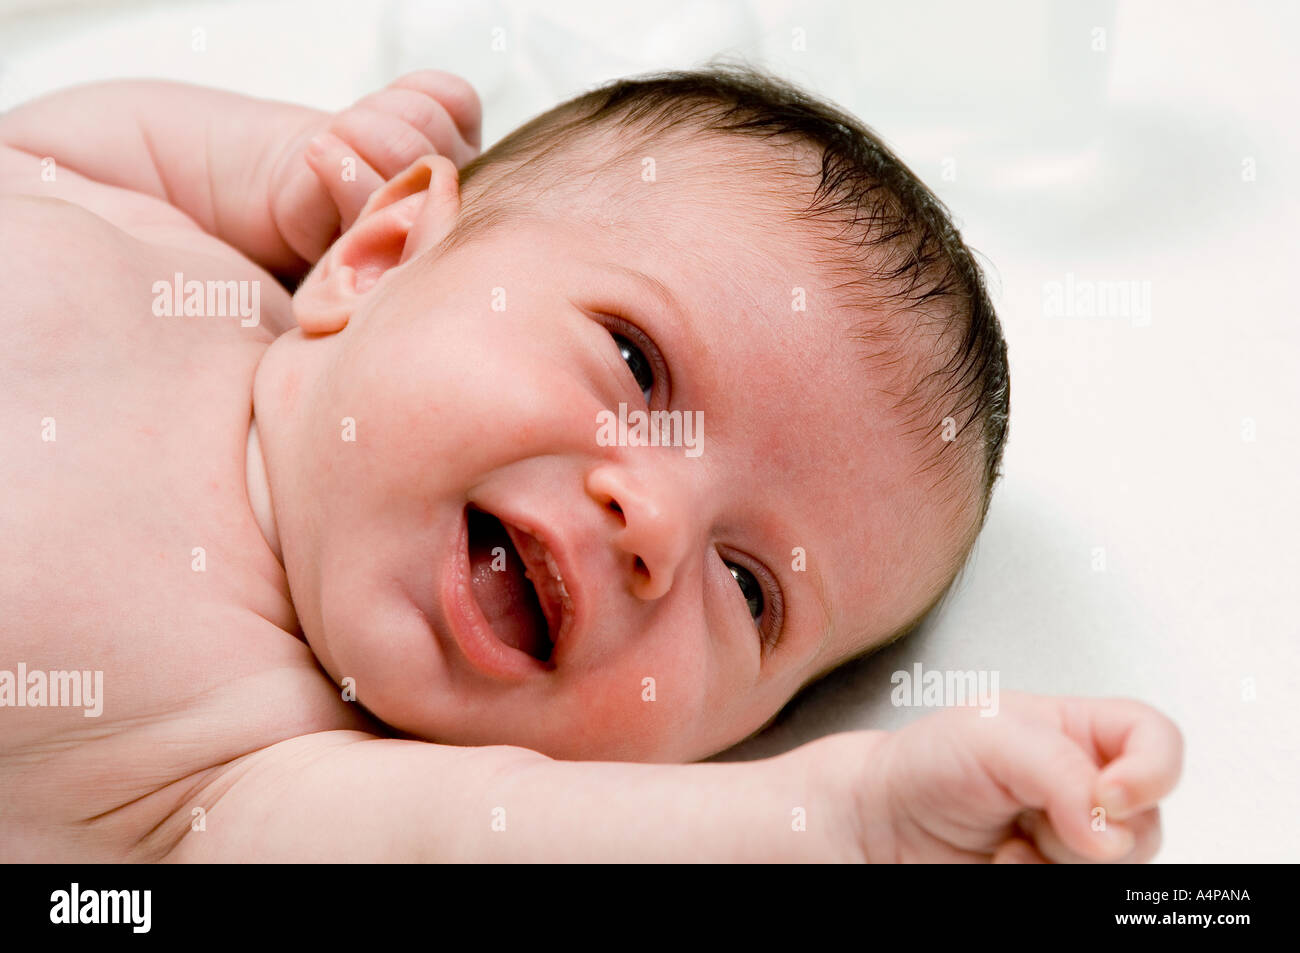 4 Week Old Baby Boy 4 Weeks Stock Photos & 4 Week Old Baby Boy 4 ...